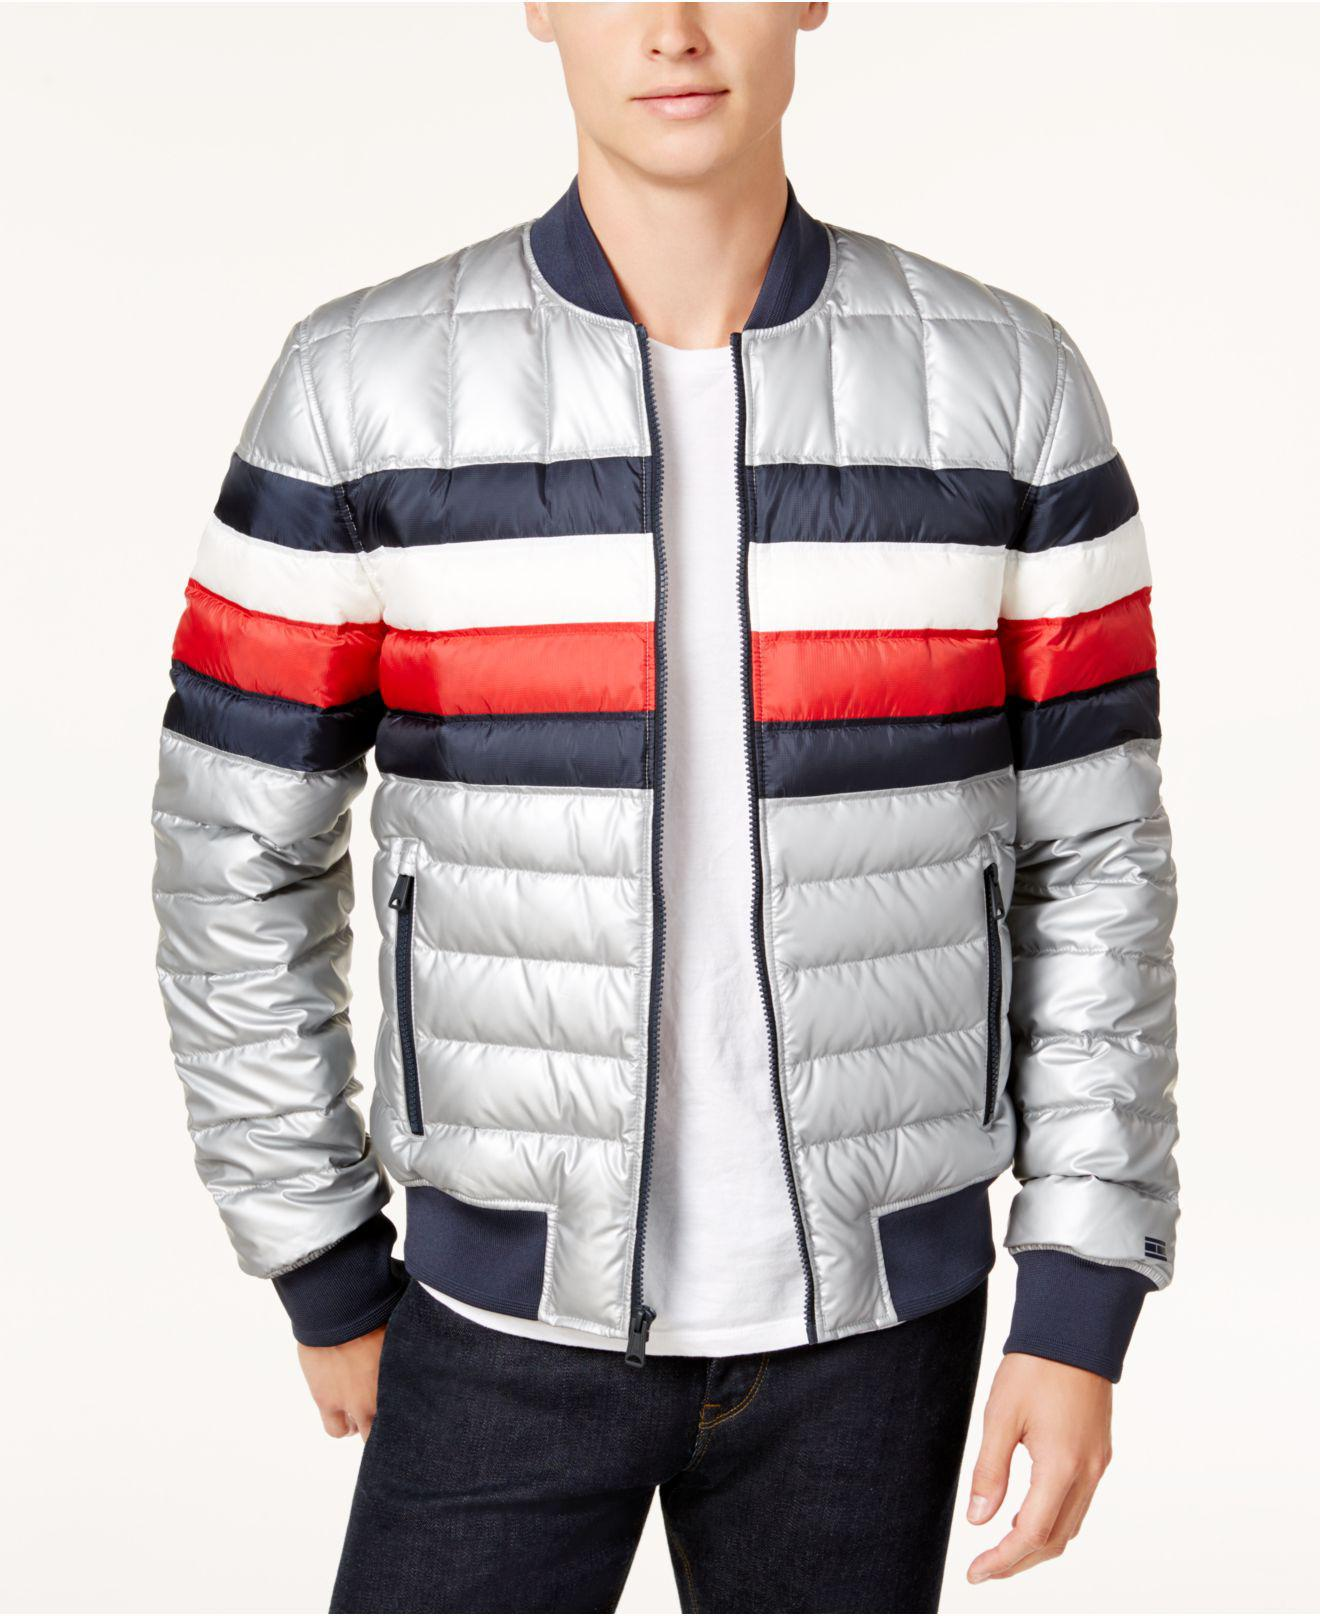 Tommy Hilfiger Mens Puffer Jacket with Stripes